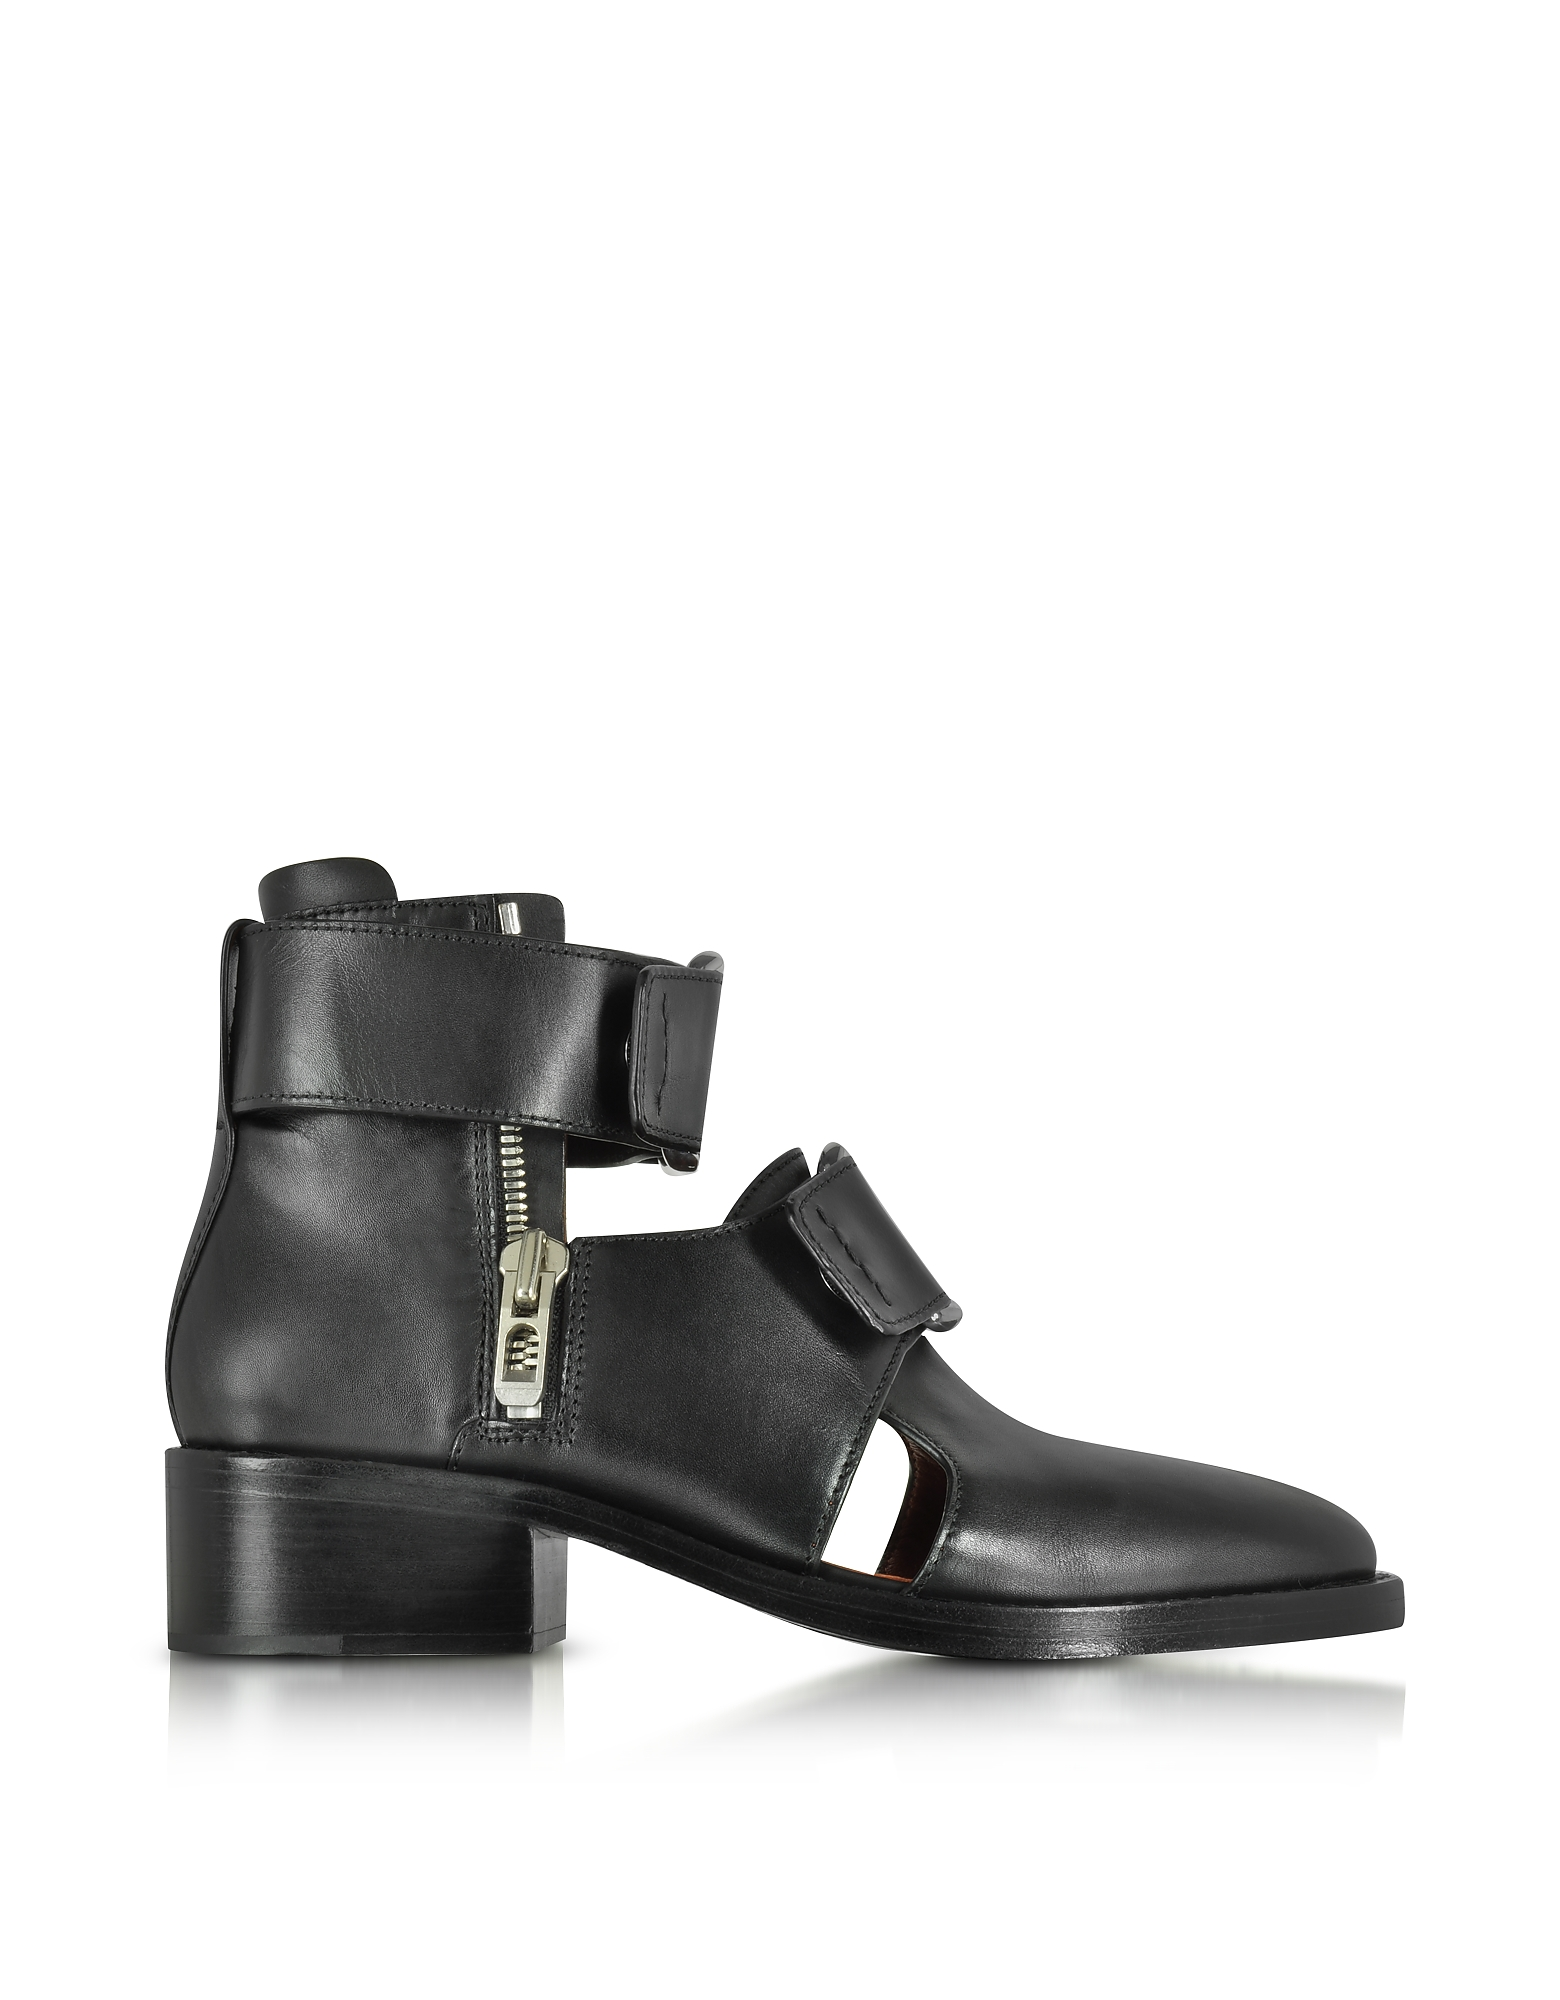 3.1 Phillip Lim Shoes, Black Leather Addis Cut Out Boot